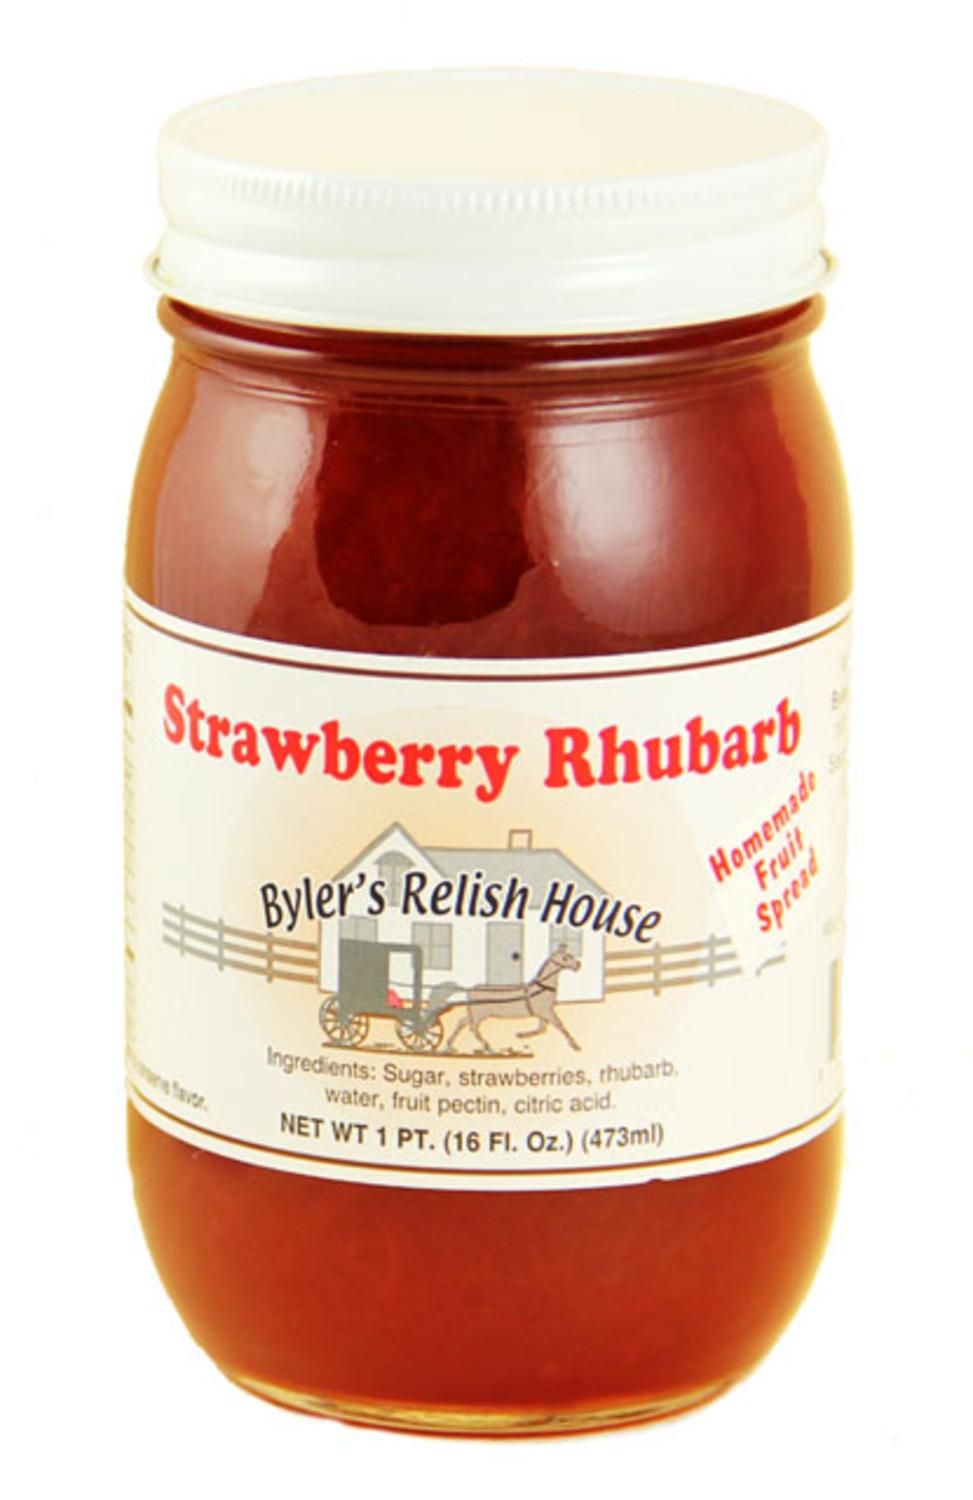 Byler's Relish House Homemade Amish Country Strawberry Rhubarb Jam 16 oz. by Byler's Relish House